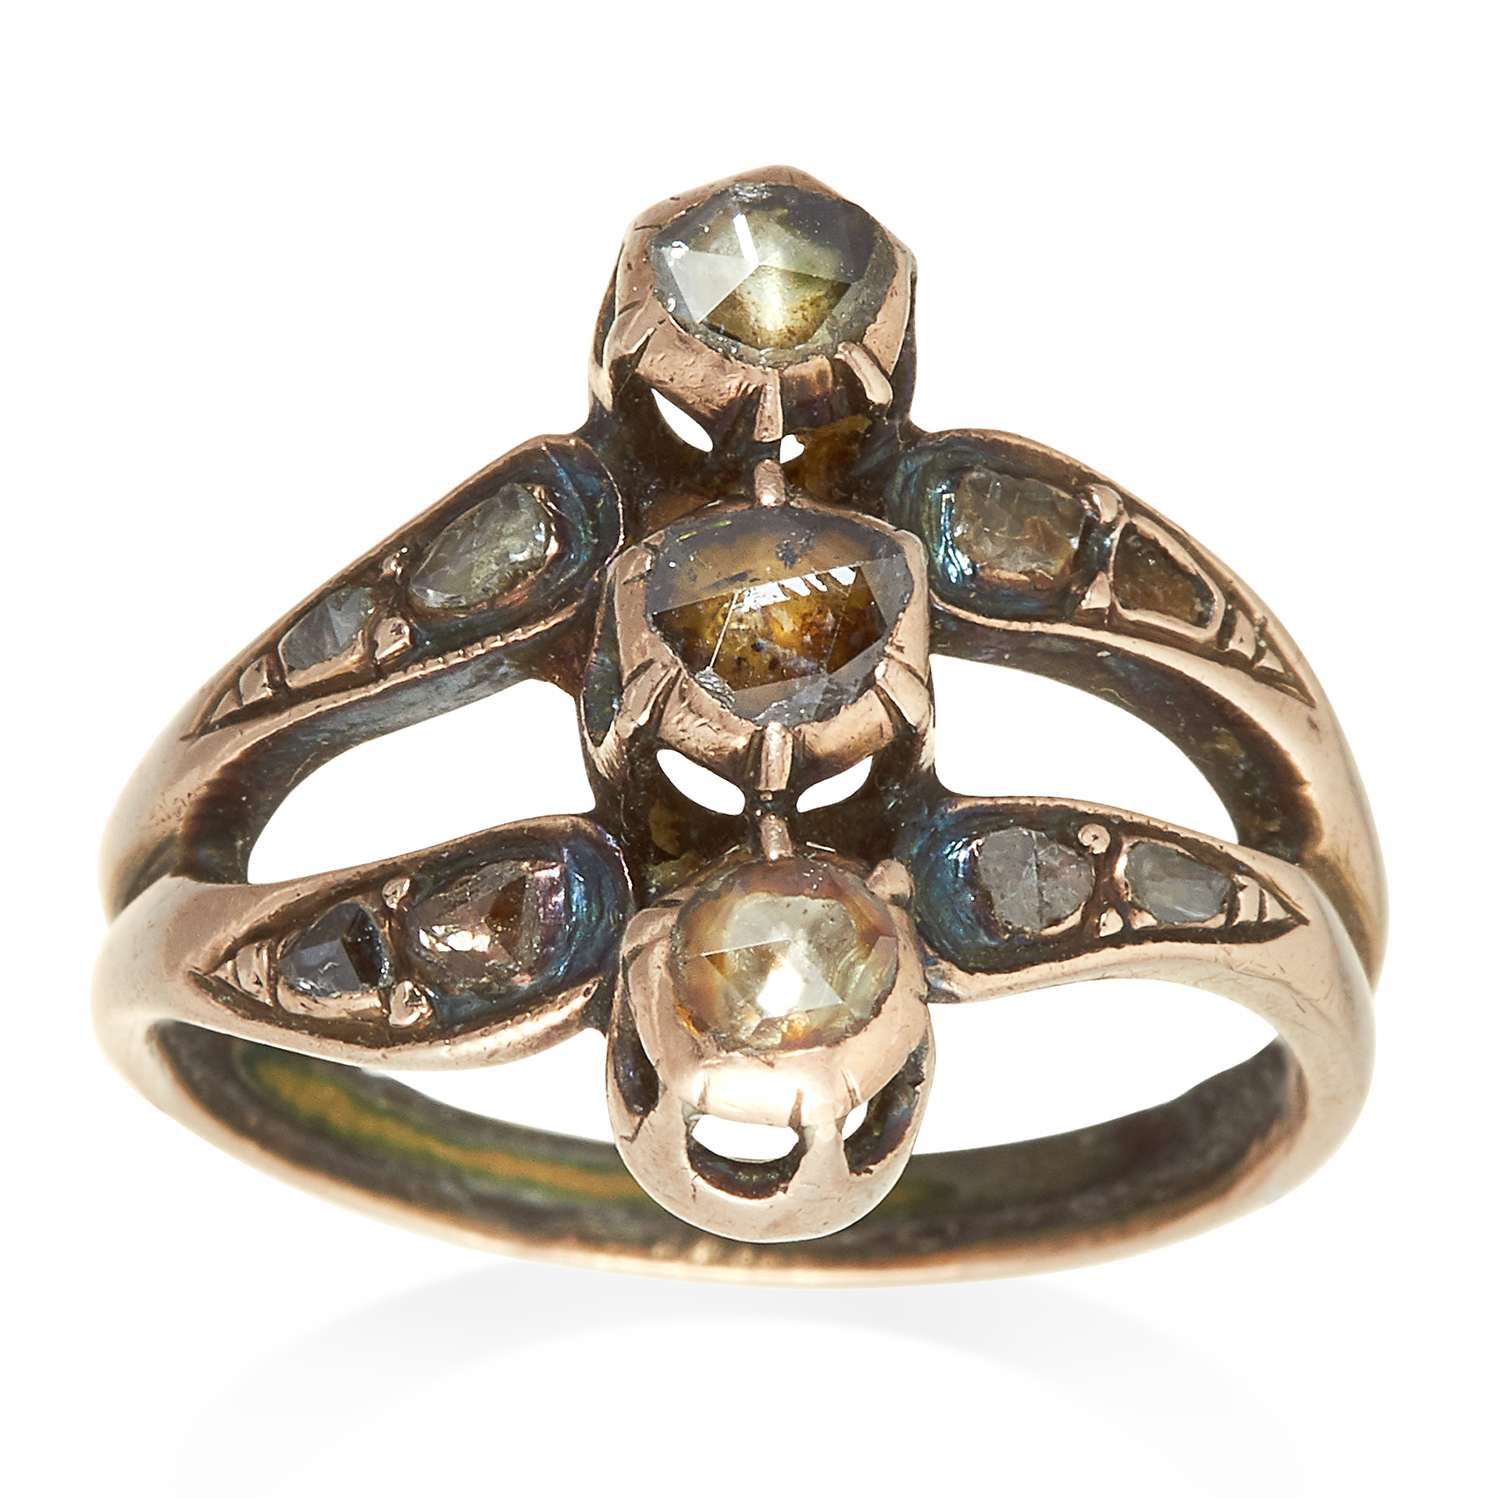 Los 360 - AN ANTIQUE DIAMOND RING, 19TH CENTURY in yellow gold and silver, the trio of rose cut diamonds in